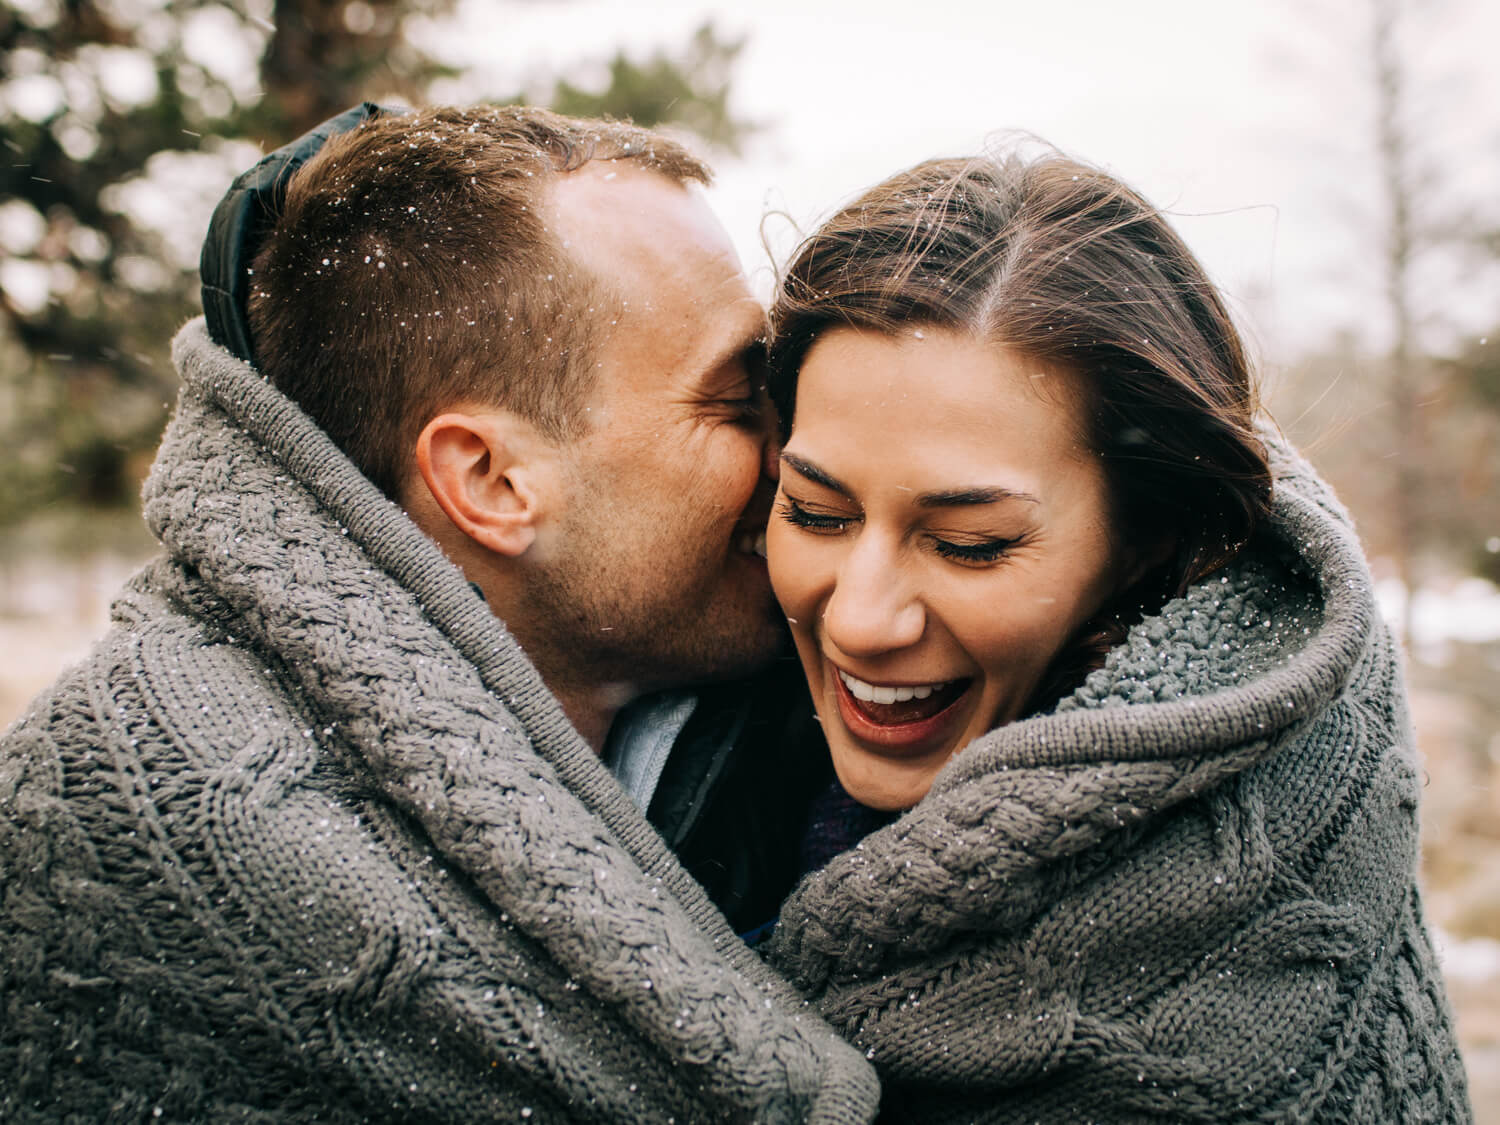 man and woman laughing in the snow together